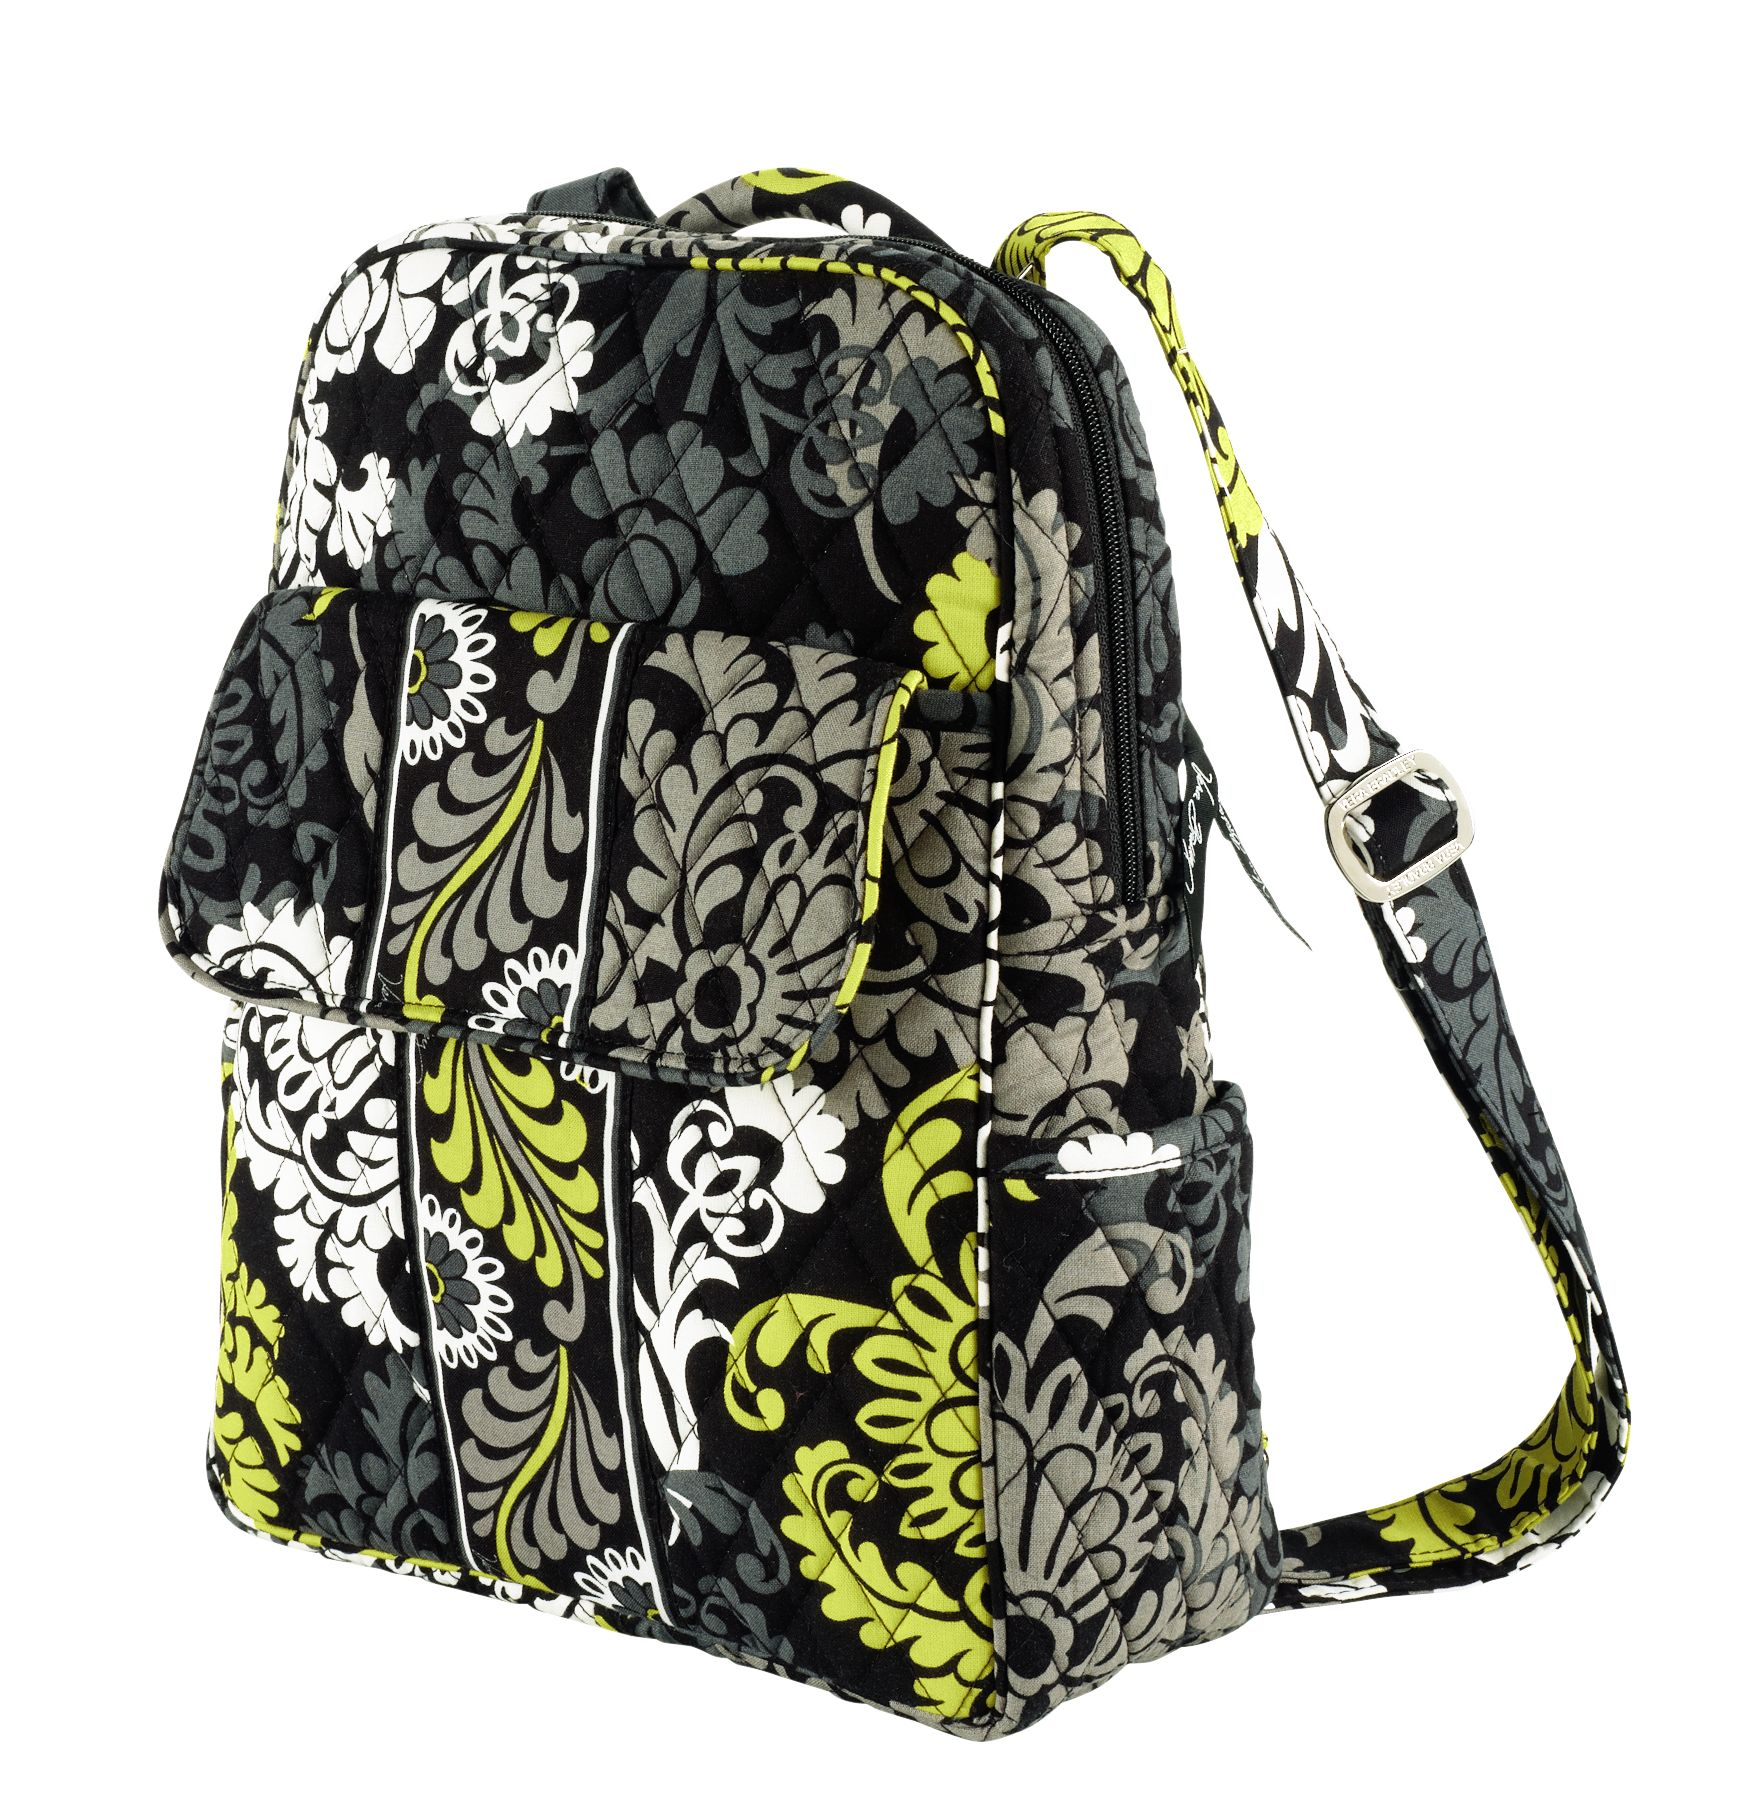 vera bradley backpack baroque. Black Bedroom Furniture Sets. Home Design Ideas